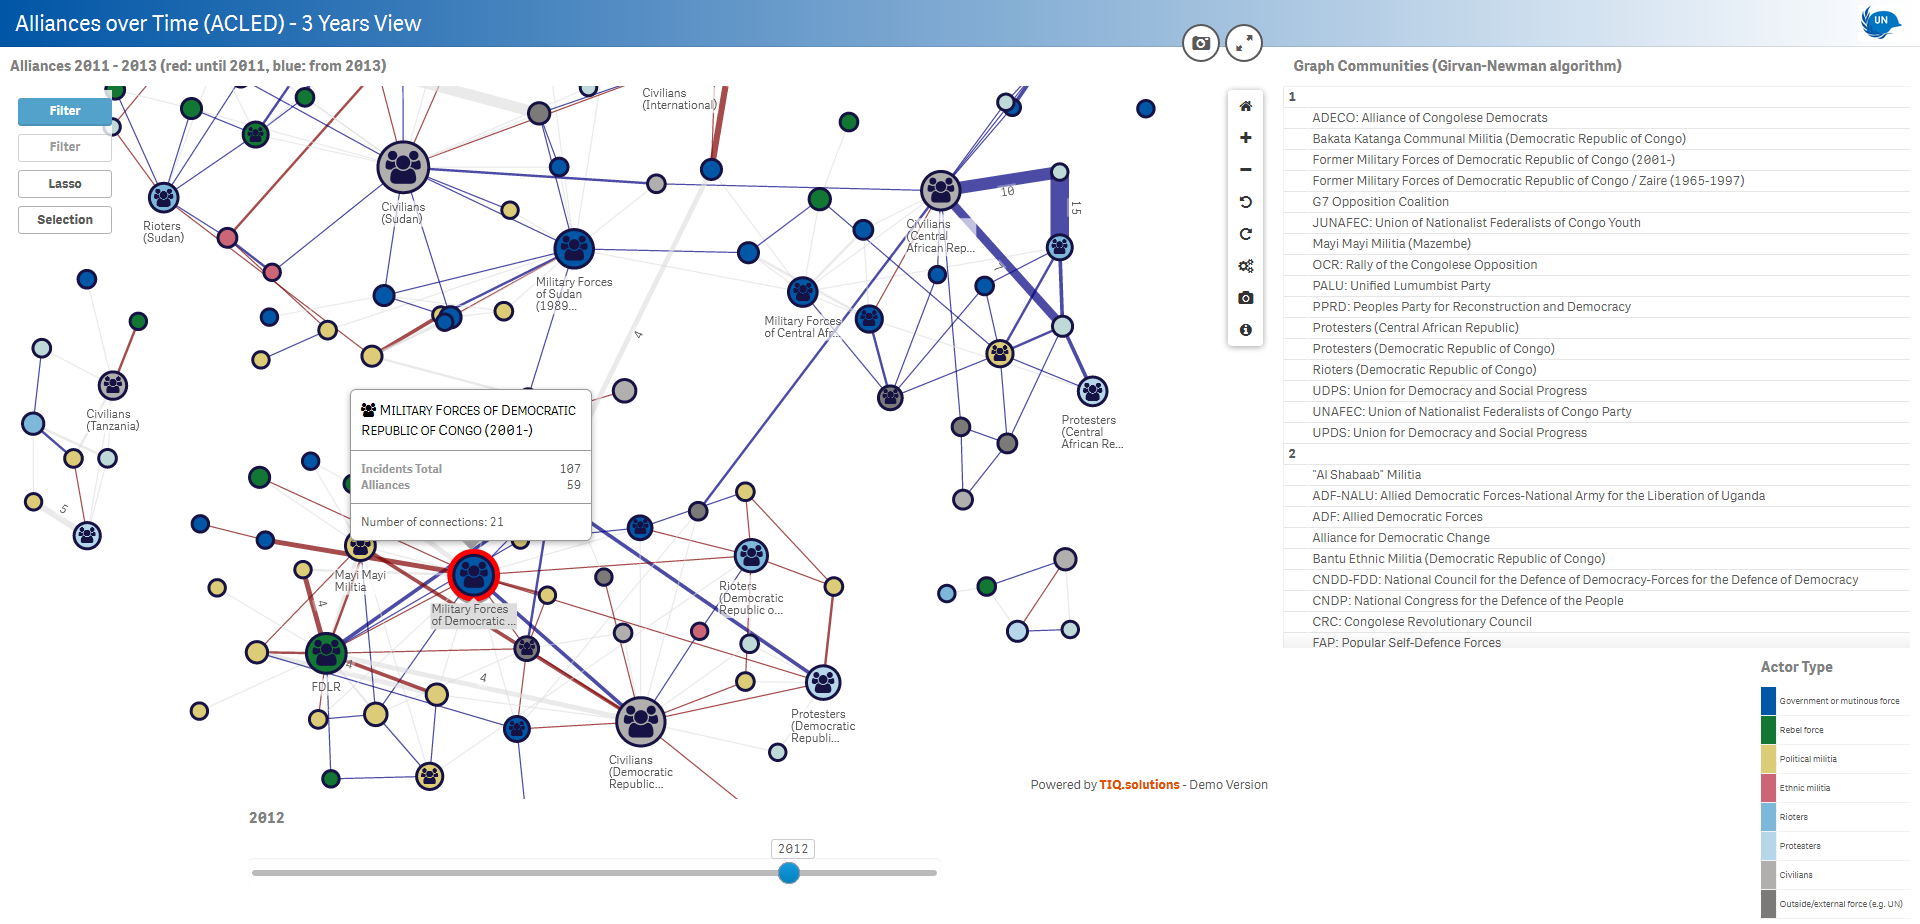 Helping the un explore predict conflicts qlik branch actor alliances over time within three years in one network diagram using edge color coding ccuart Choice Image